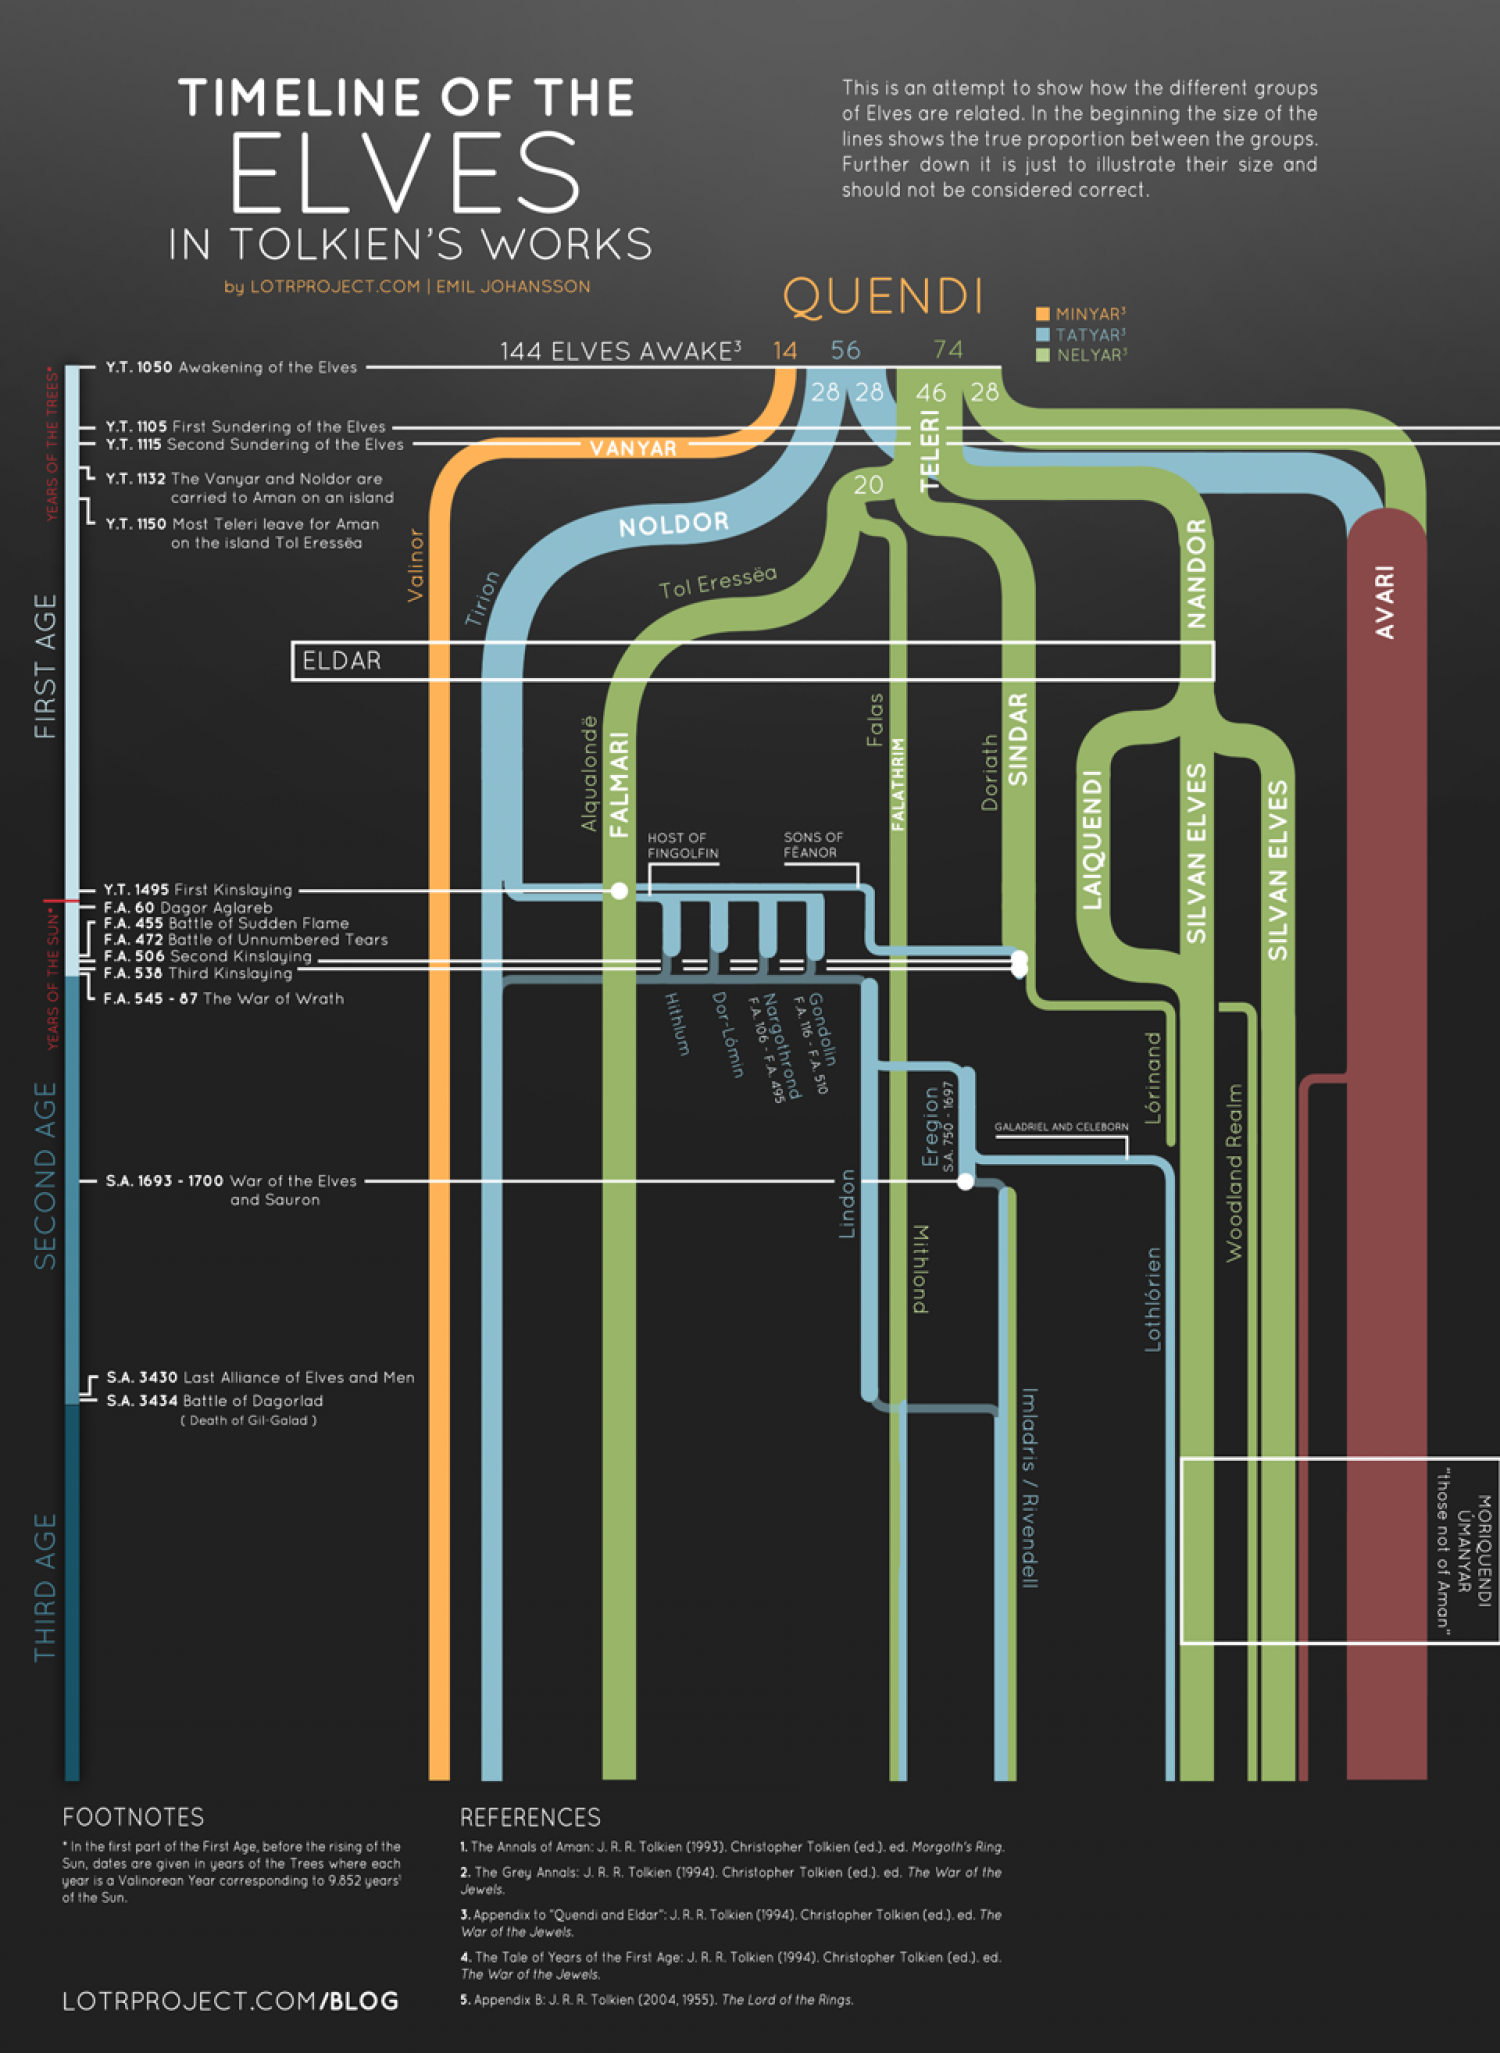 Timeline of the Elves in Tolkien's works Infographic